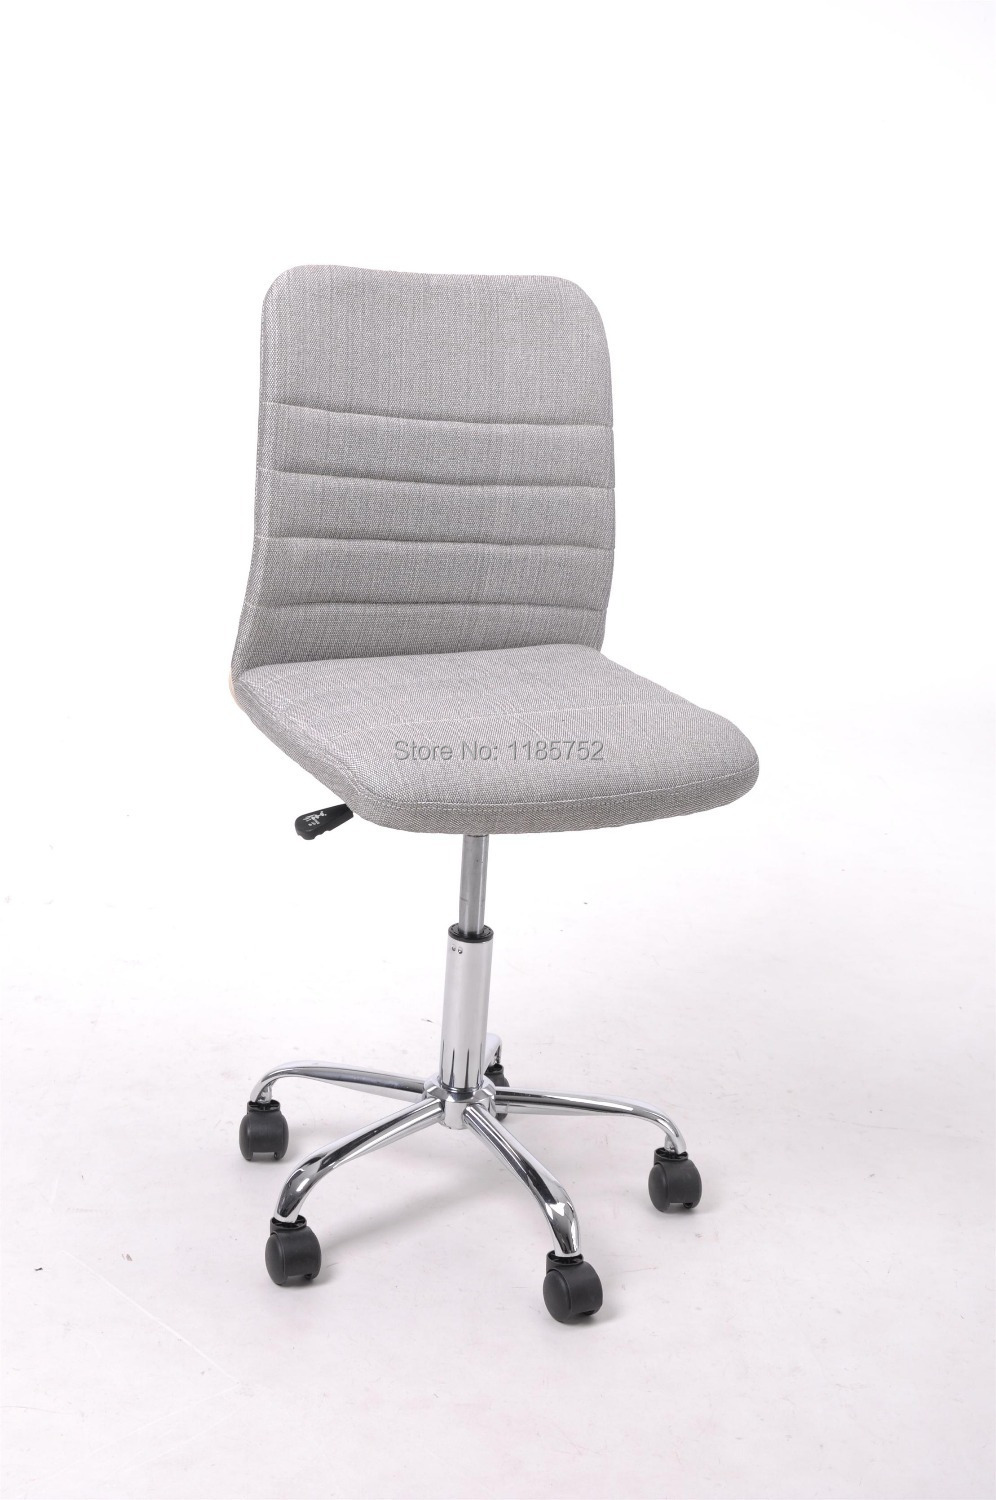 Brand New Grey Lift Chair Office Chair Without Arms Computer